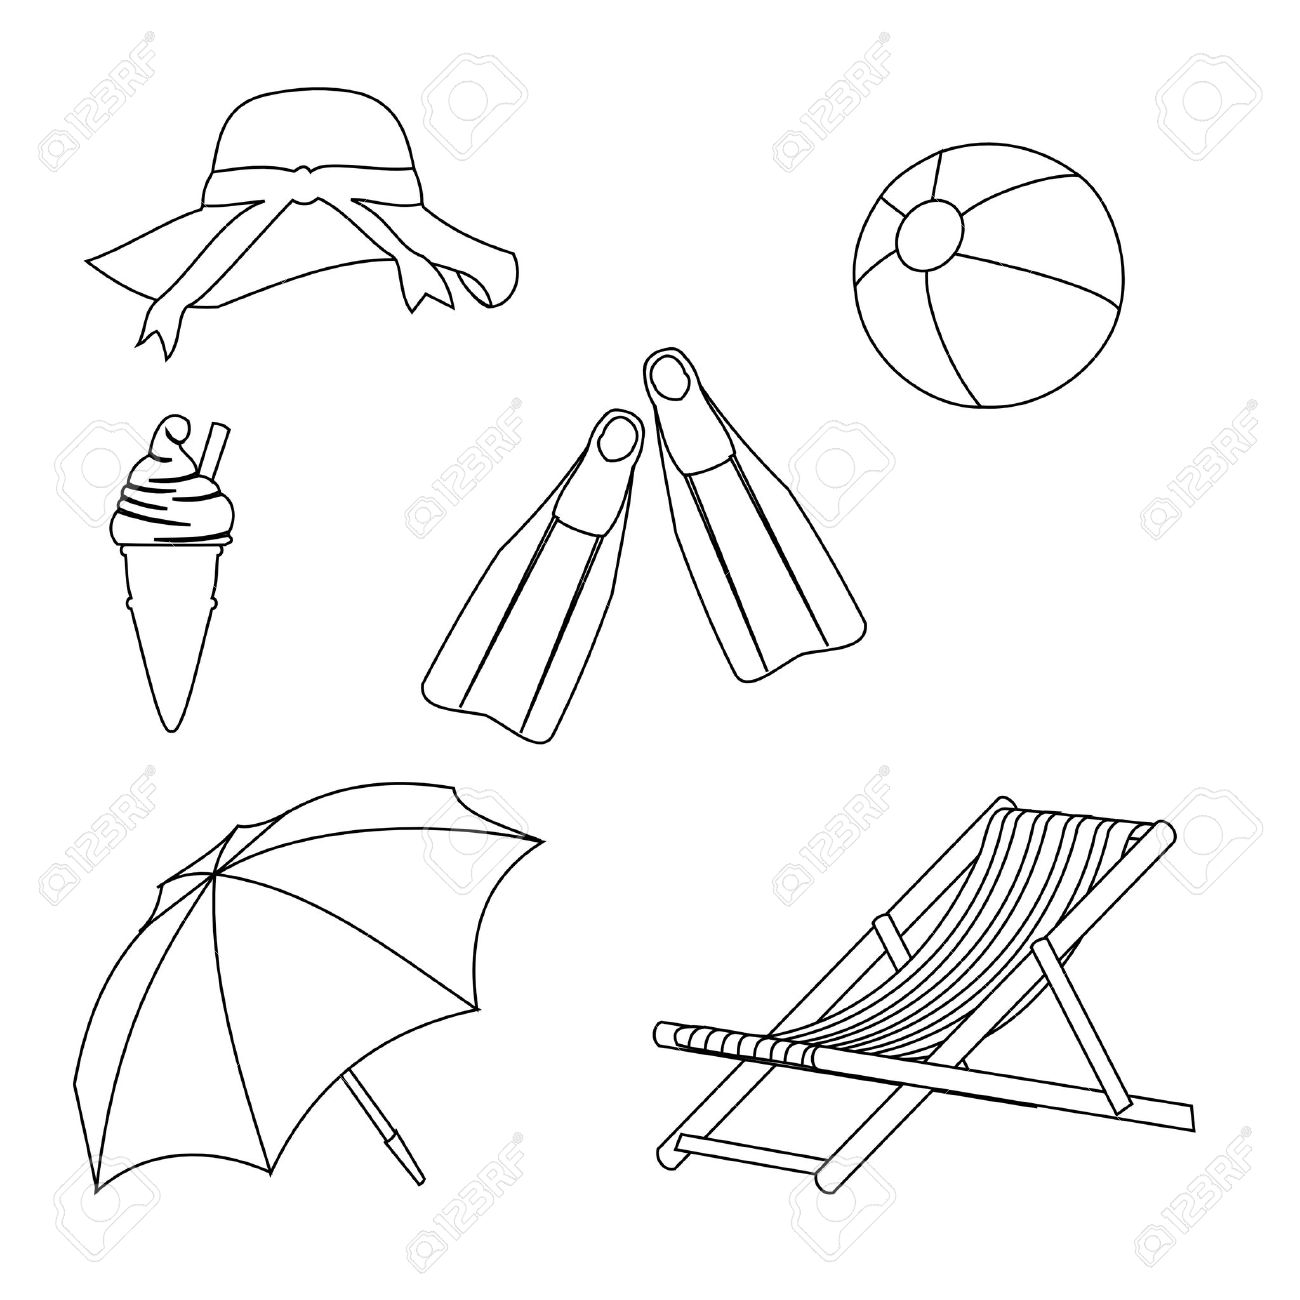 Easy beach chair drawing - Beach Objects Line Style Drawing Stock Vector 9805811